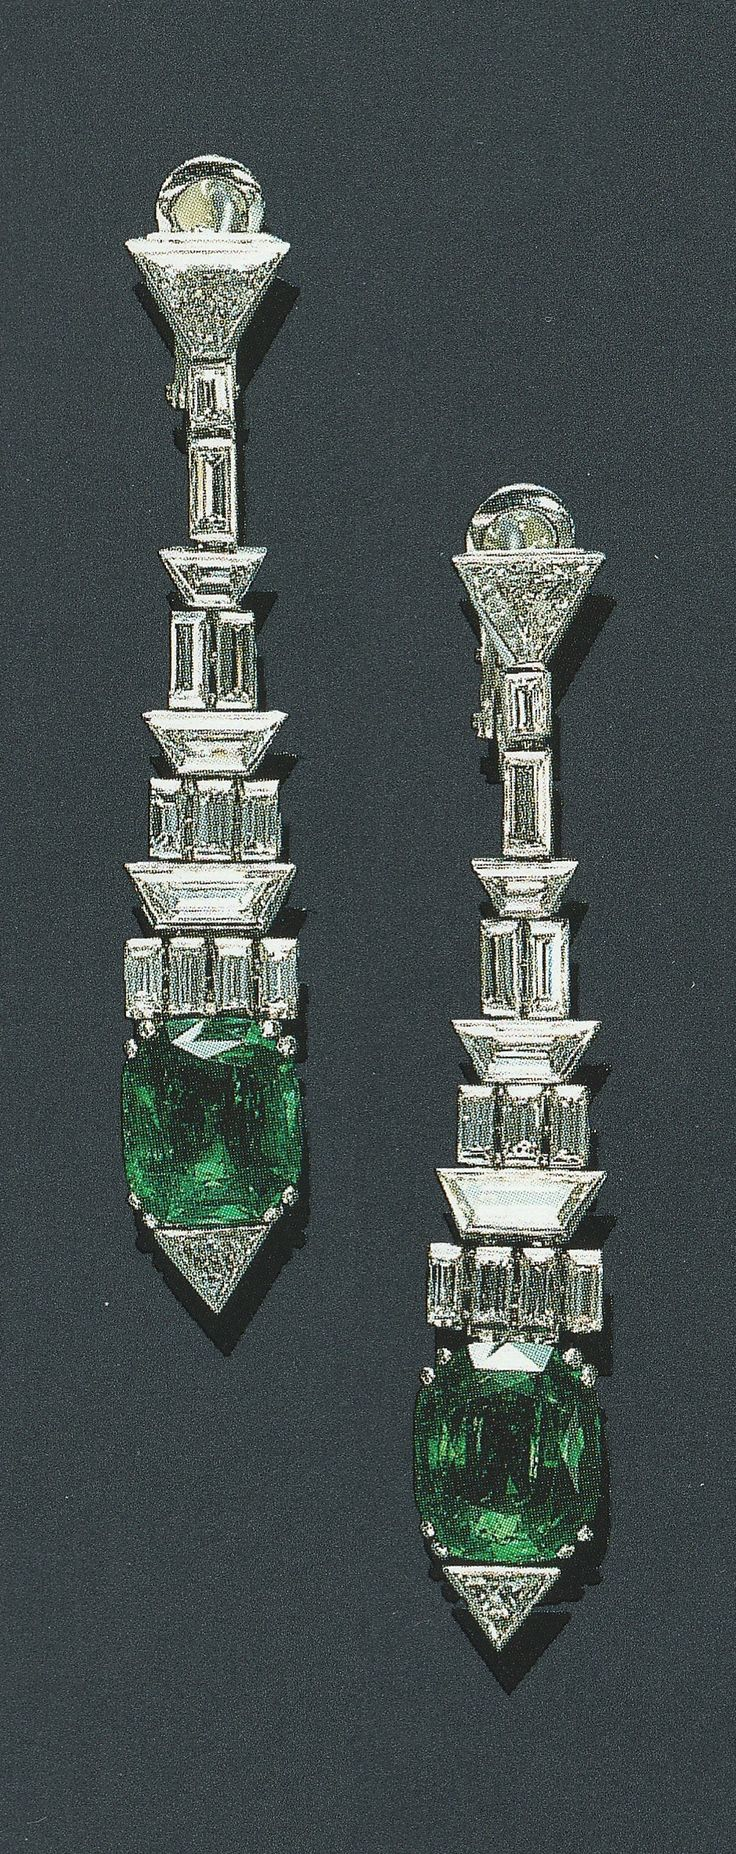 Cartier - An elegant pair of Art Deco emerald and diamond ear pendants, circa 1930. Each set with a modified cushion-cut emerald, accented by a triangular-cut diamond terminal, joined by graduating baguette and trapeze-cut diamond articulated links to a triangular-cut diamond, mounted in platinum. Source: Christie's, Magnificent Jewels, NY, April 2000.